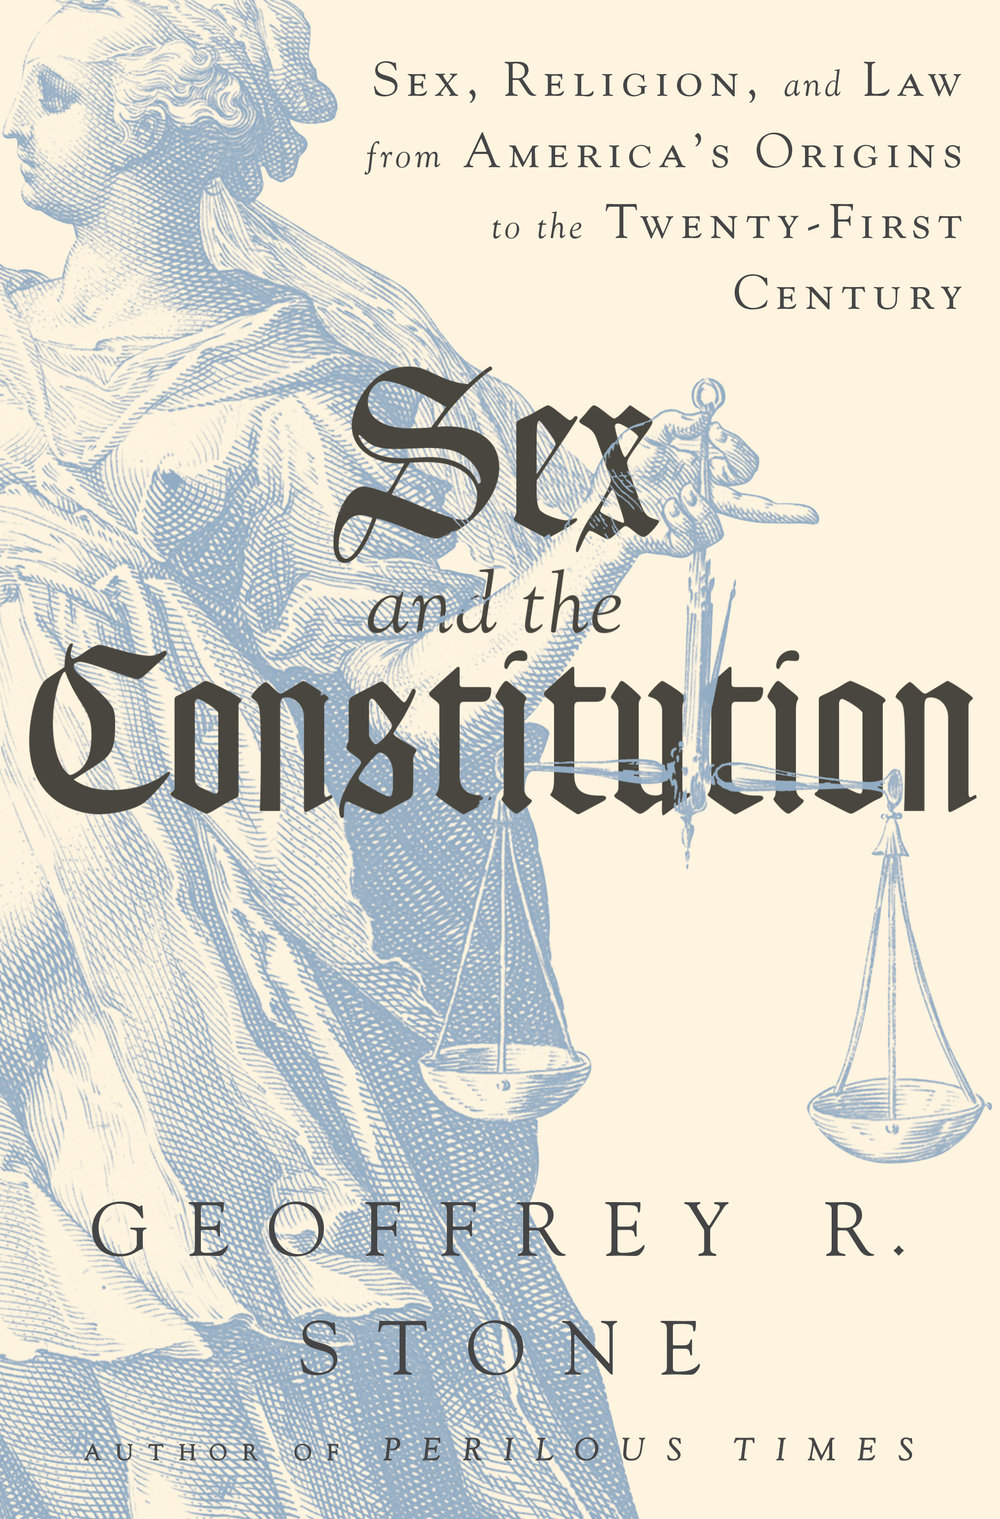 Sex and the Constitution_978-0-87140-469-5.jpg